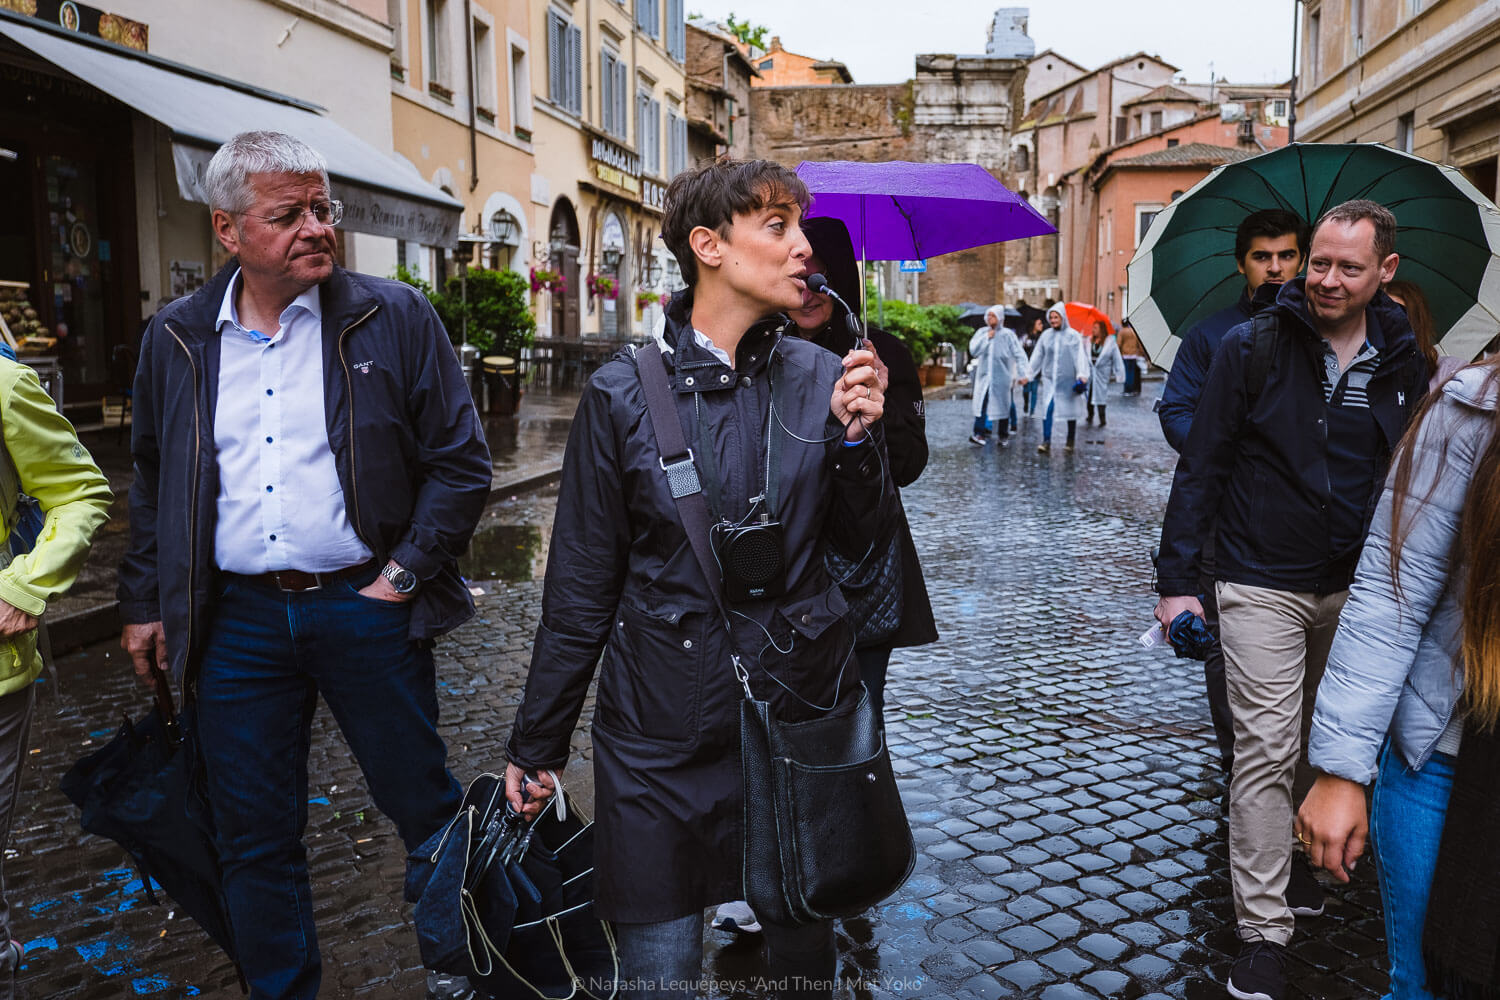 """Jewish Roma walking tour in the Jewish Ghetto, Rome. Travel photography and guide by © Natasha Lequepeys for """"And Then I Met Yoko"""". #rome #jewishghettorome #italy #fujifilm #travelphotography"""